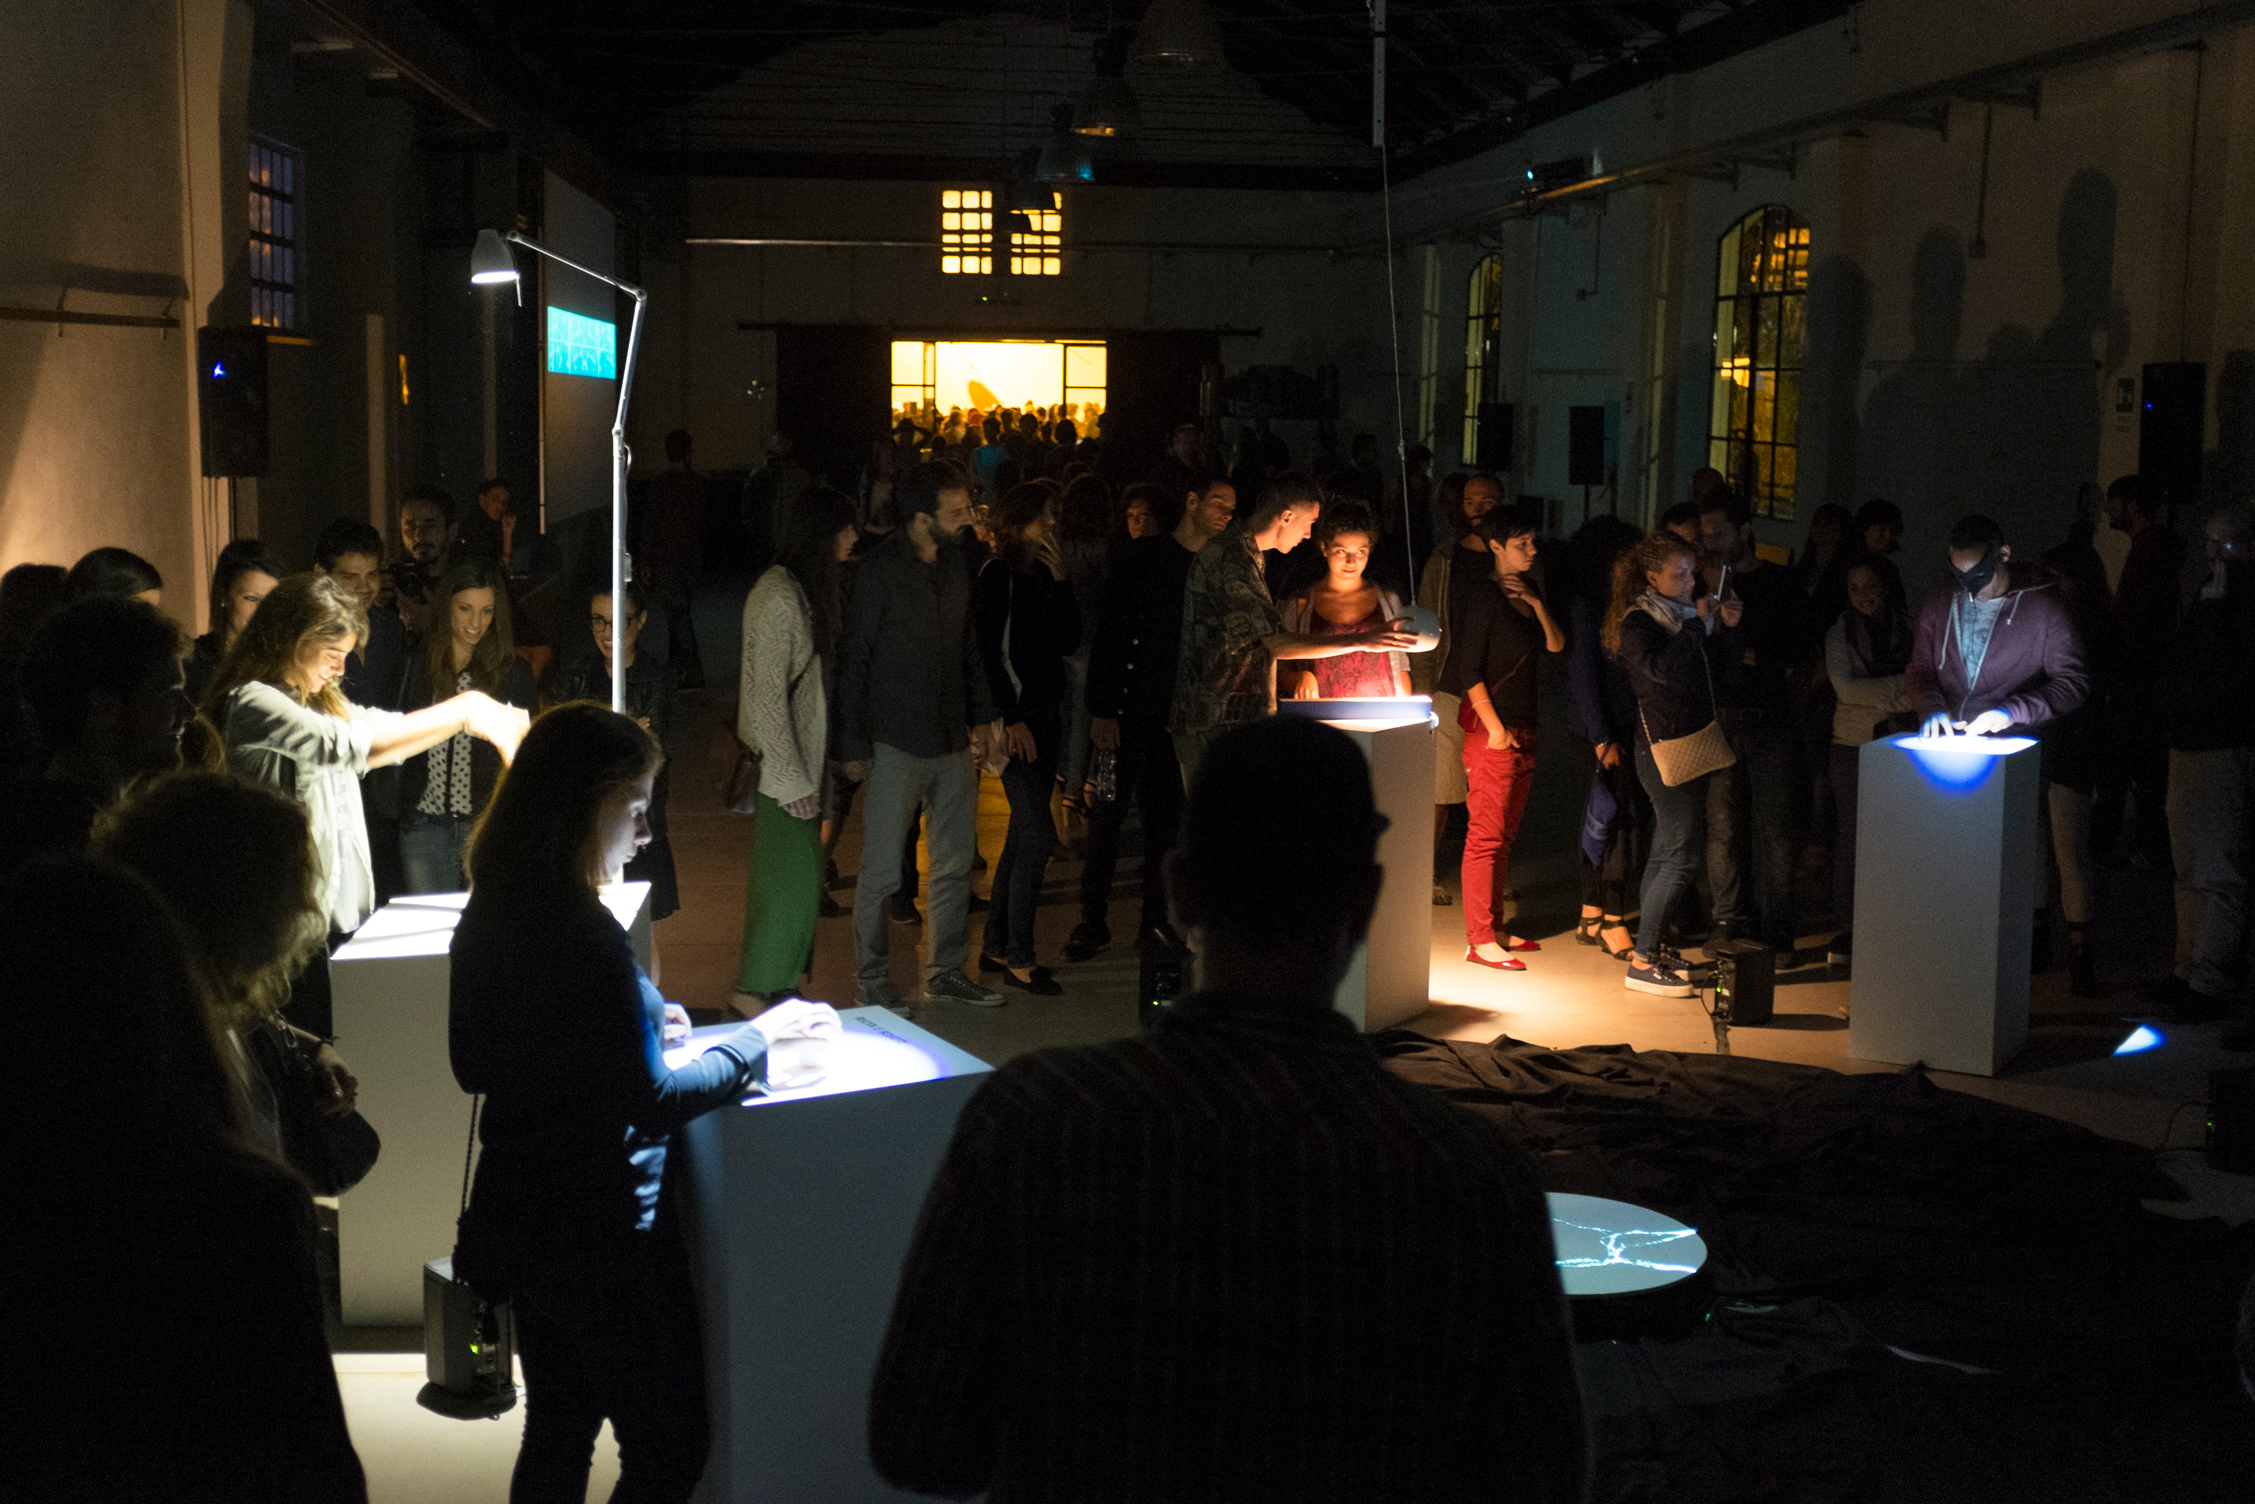 The Cave of Sounds by Tim Murray-Browne and members of Music Hackspace. Audiences playing with the interactive sound installation of digital musical instruments using movement, shadow, light and touch at 90dB Festival of the Sonic Arts Award, Rome, Sep 2014.